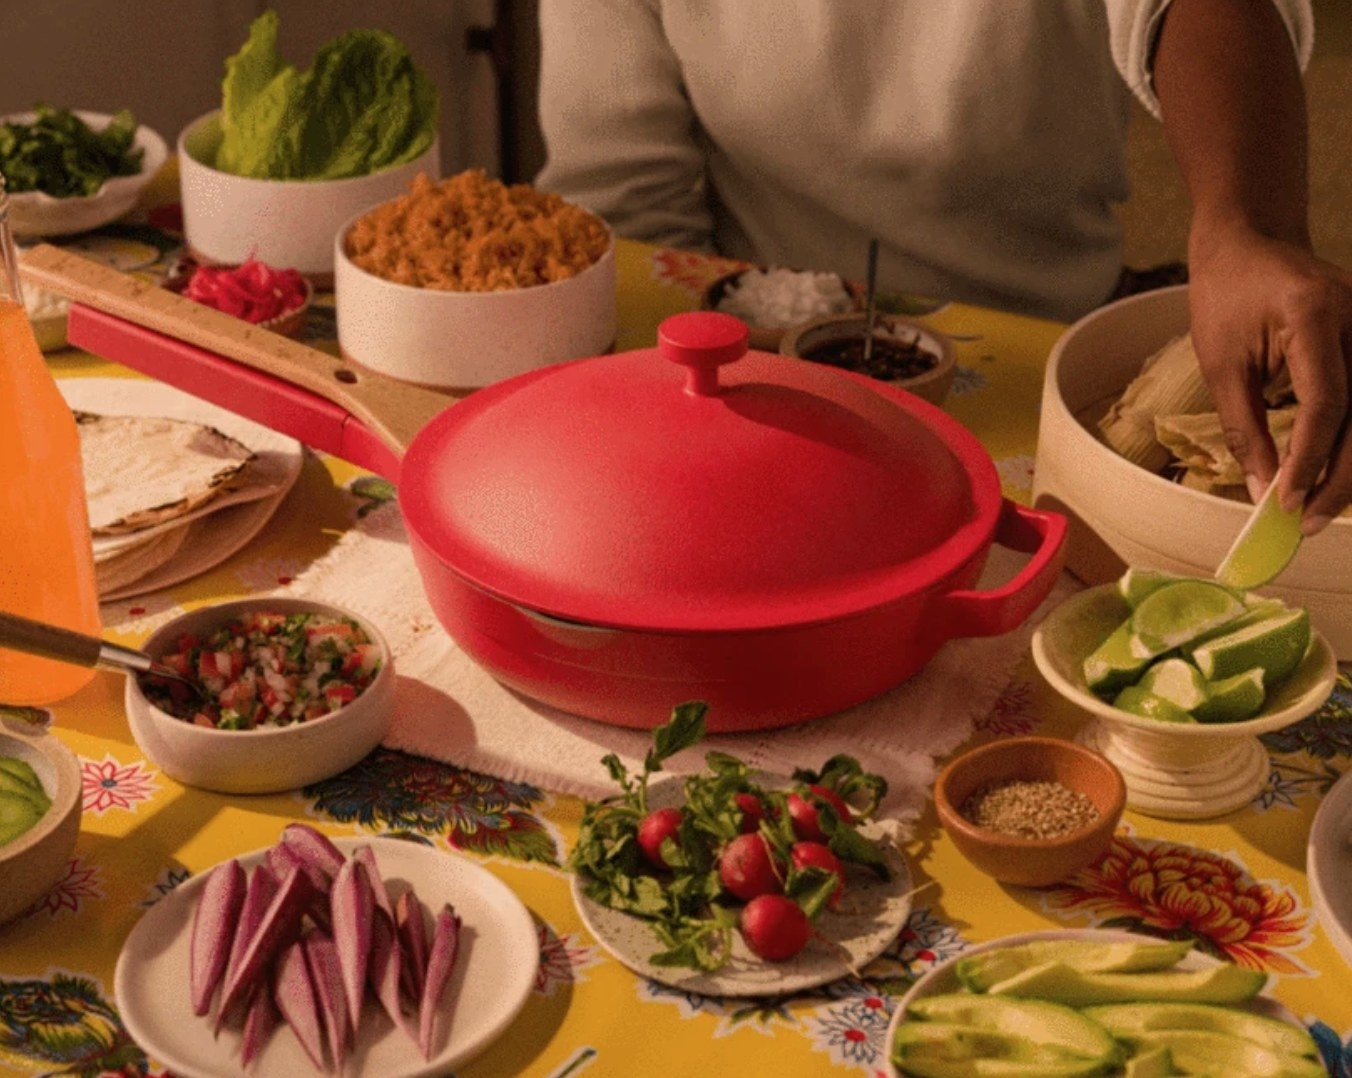 """The """"Heat"""" pan surrounded by fruits and veggies on a table with a yellow cloth"""